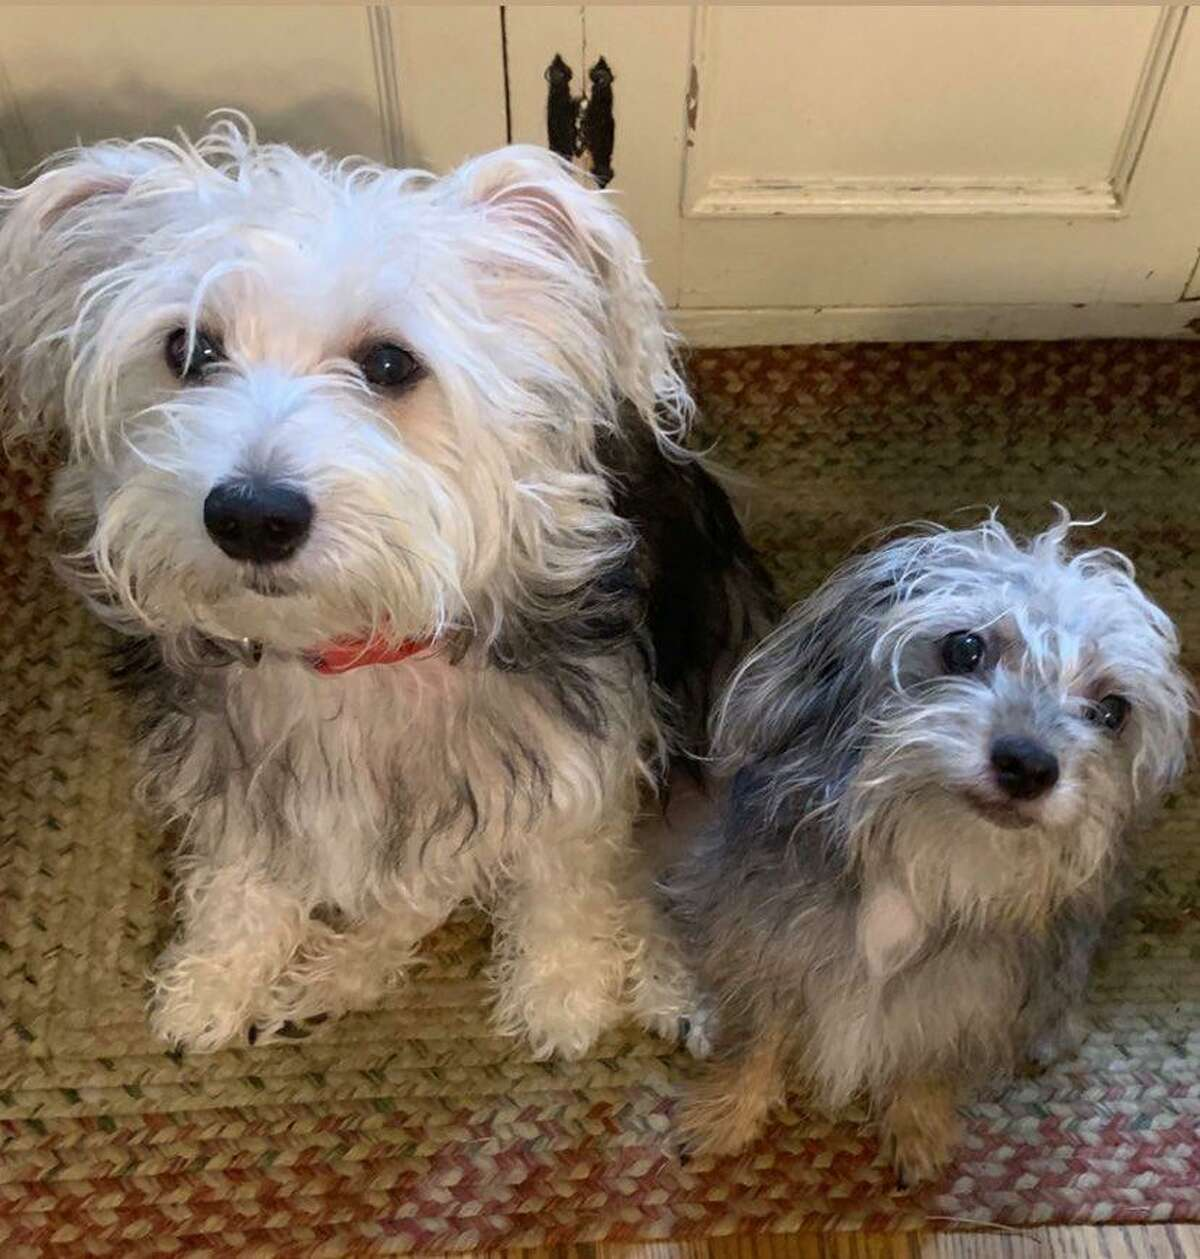 Nashville, TN resident, Stacey Harrison Boyd says her pups Simon and Lucy have always been a source of comfort, but especially now during quarantine.